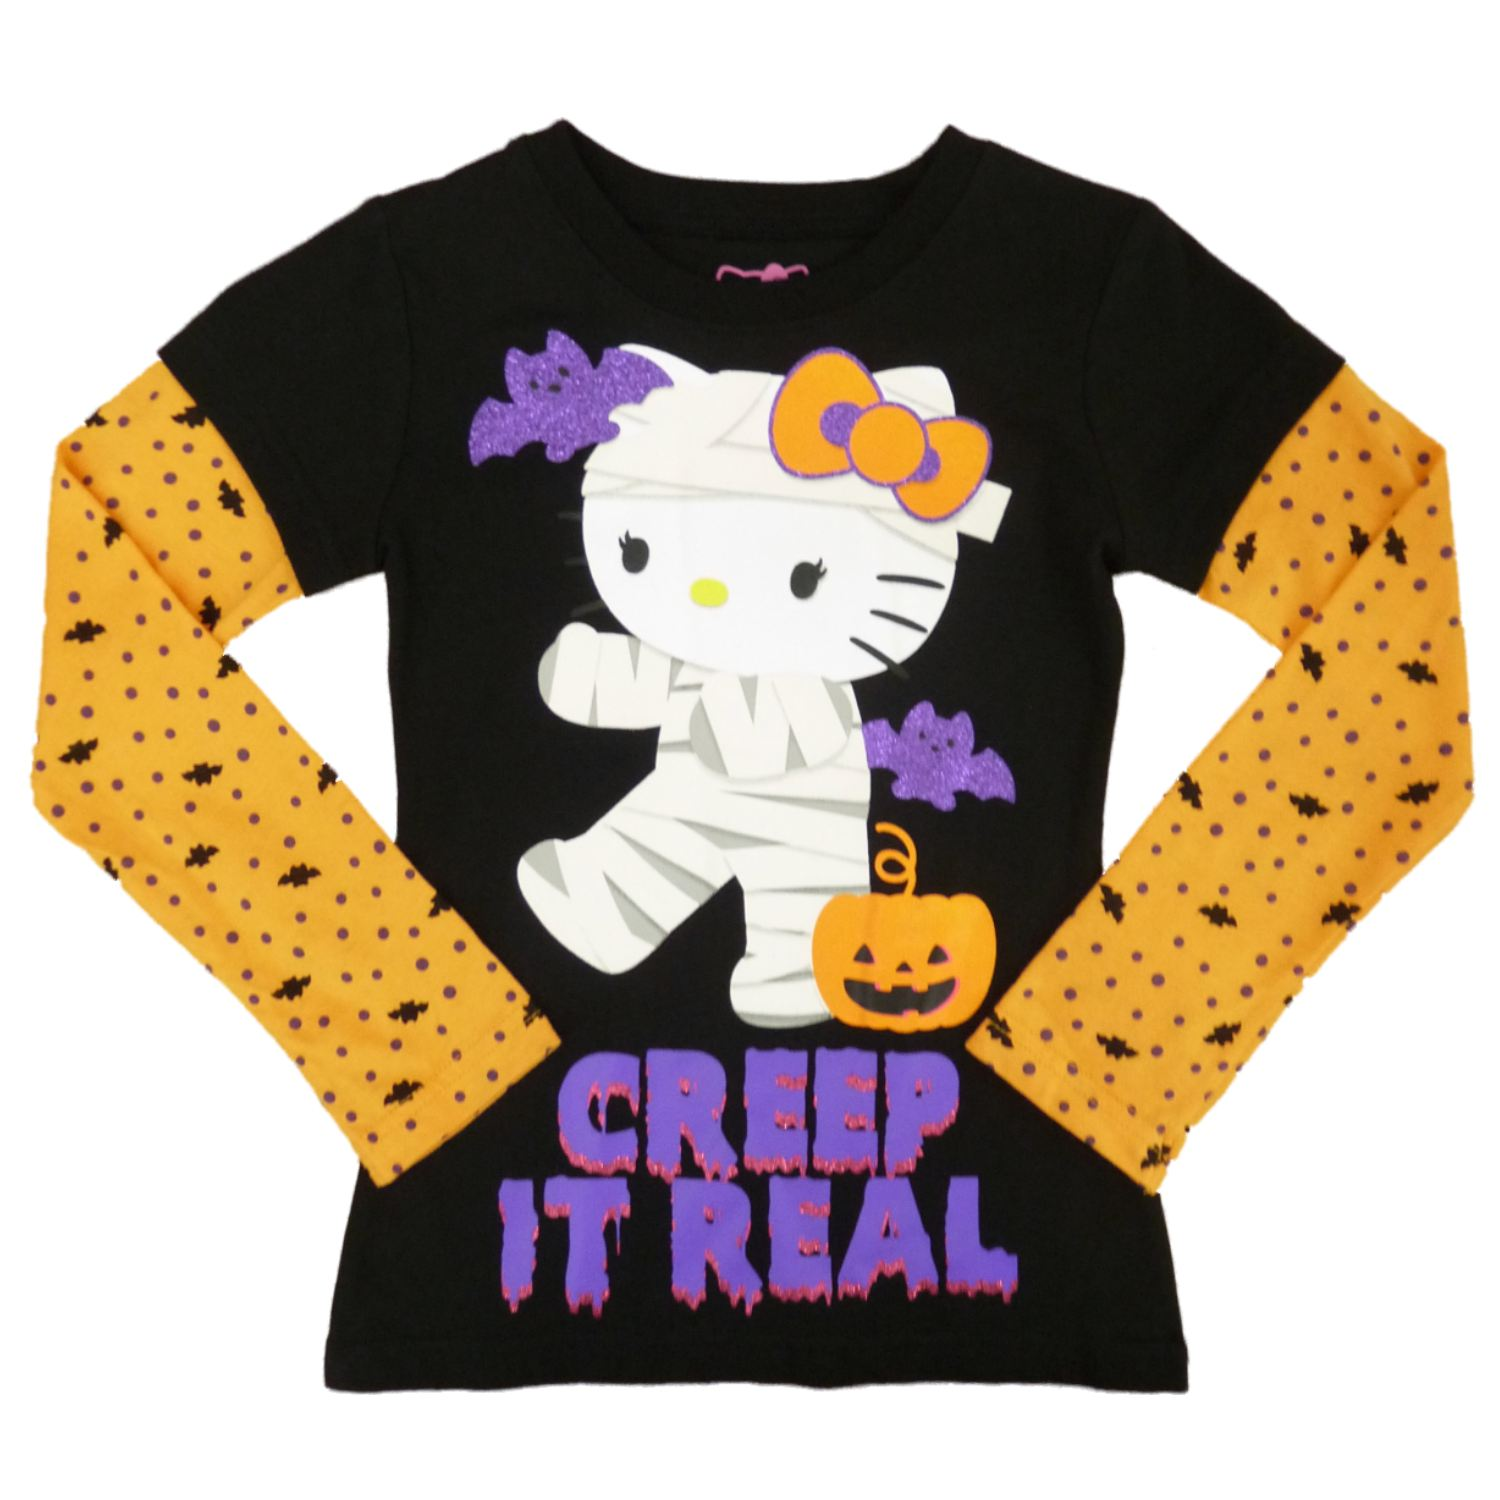 Hello Kitty Girls Black Creep It Real Halloween Long Sleeve T-Shirt